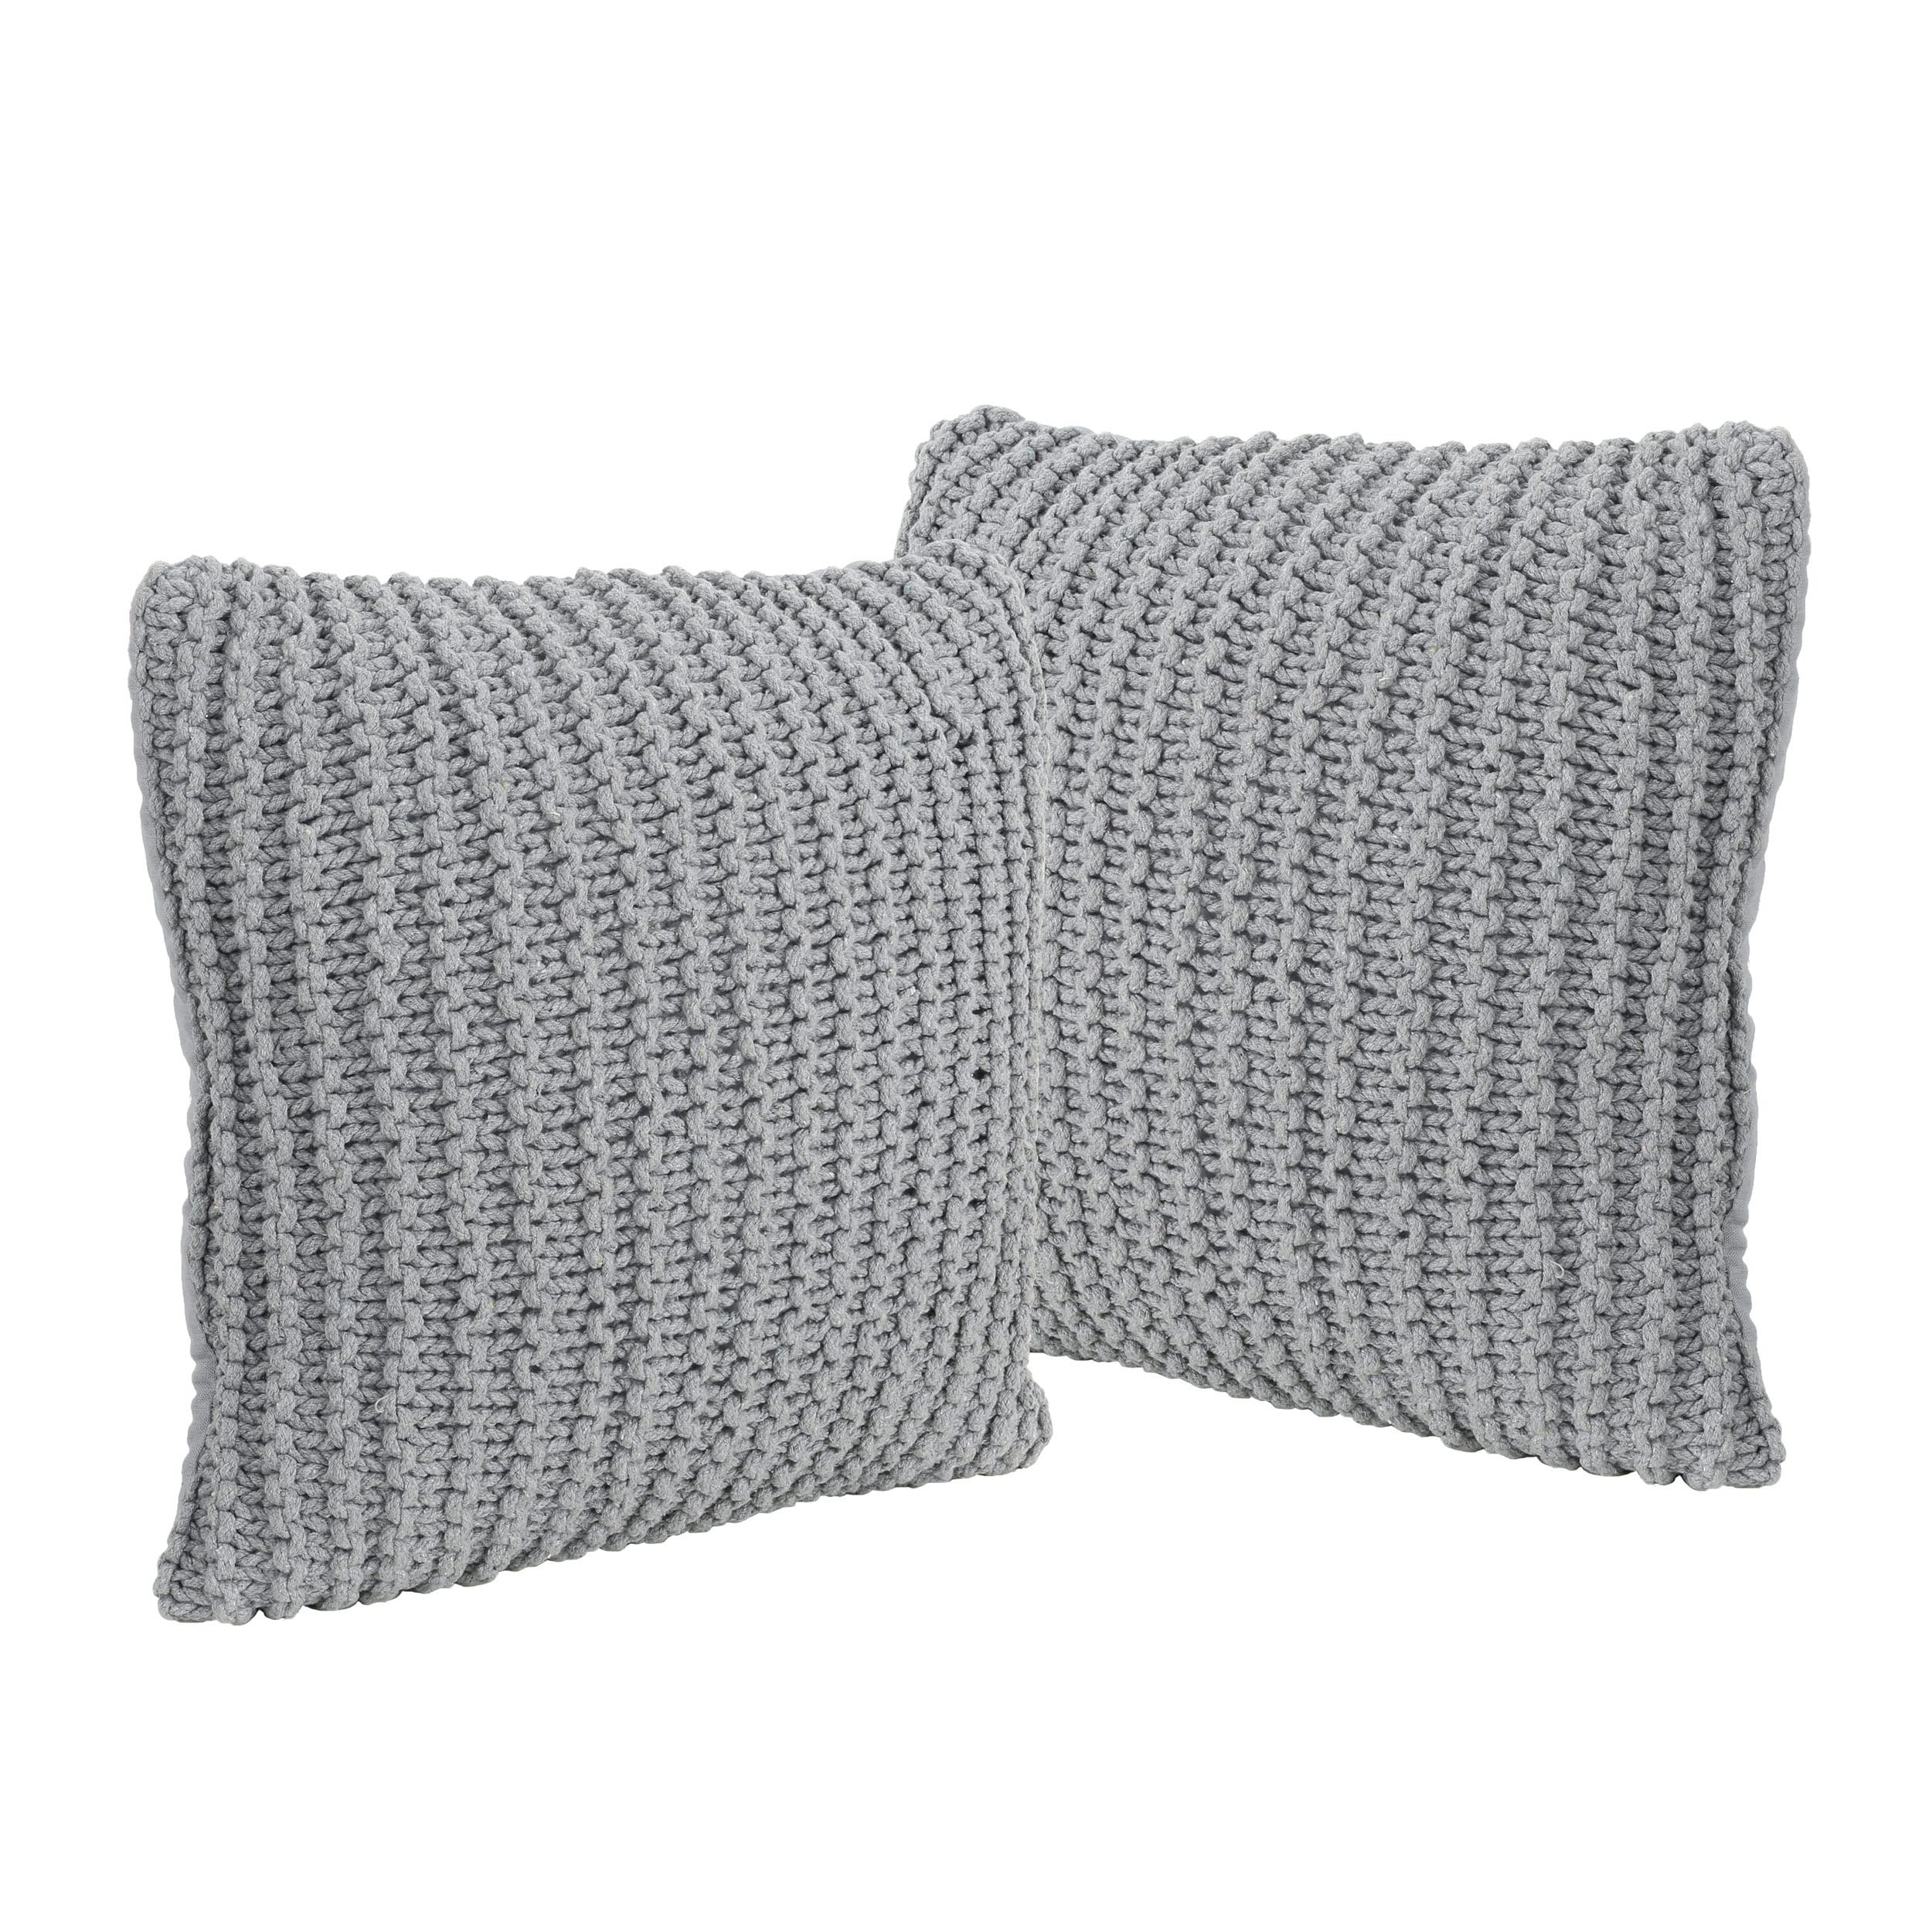 Christopher Knight Home Farlie Knitted Cotton Pillows Set Of 2 By Chirstopher Knight Home Walmart Com Walmart Com